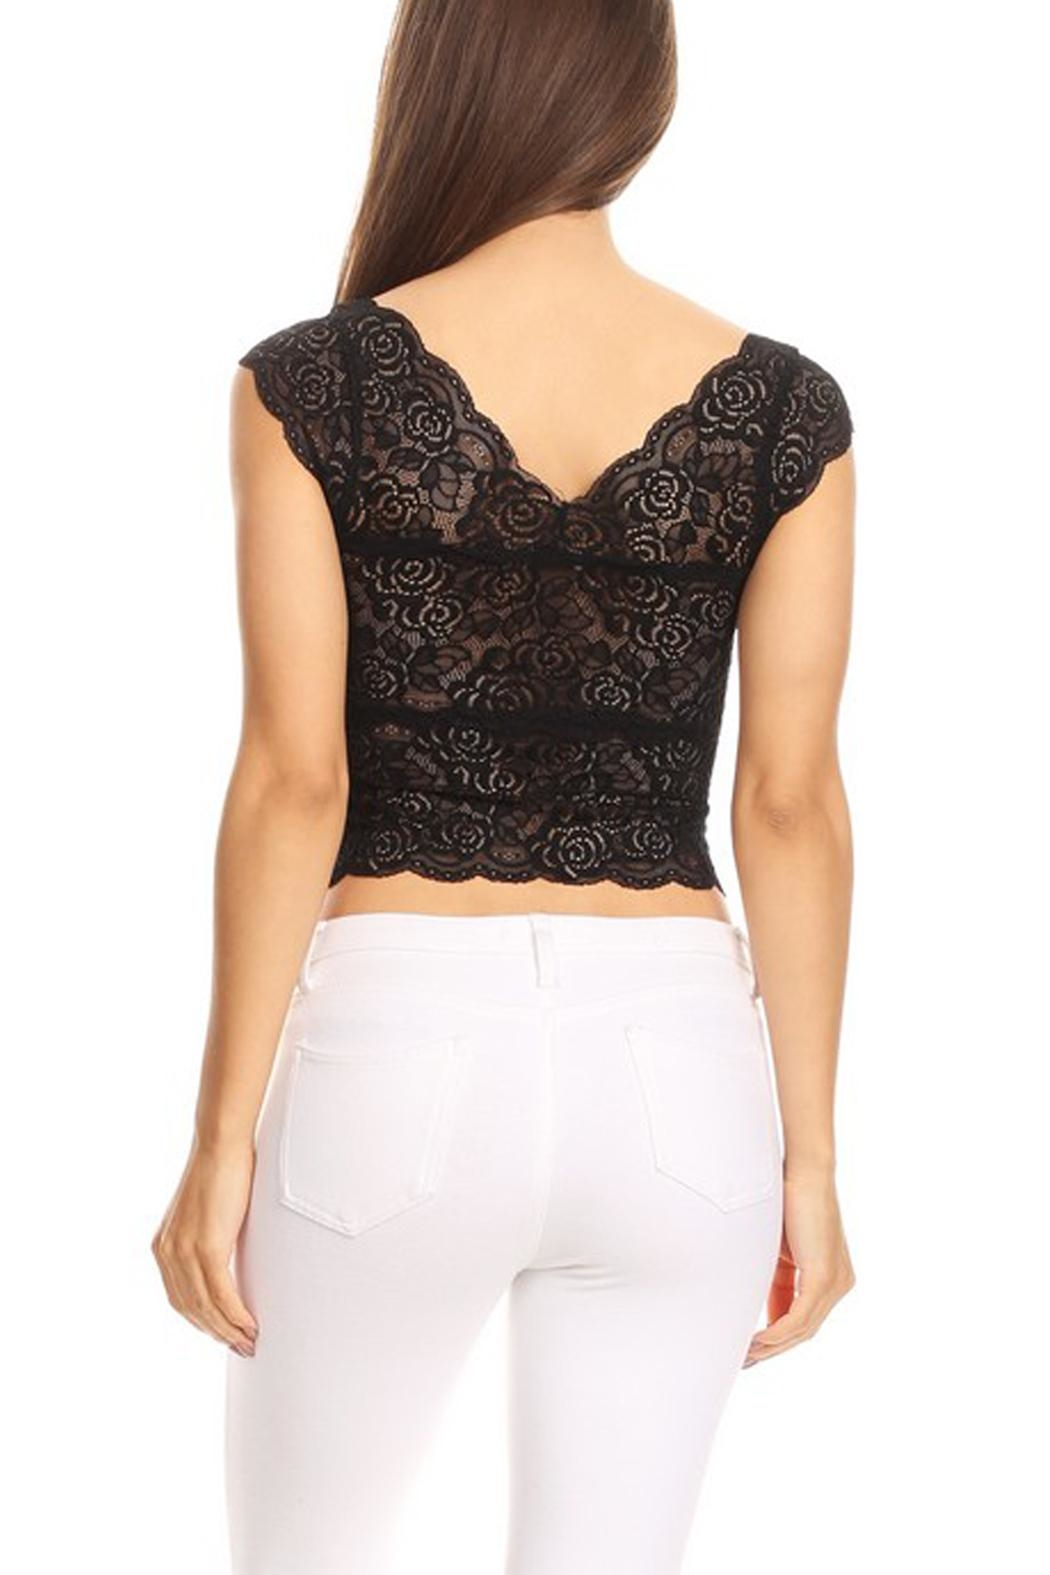 JChronicles Lace Crop Top - Side Cropped Image